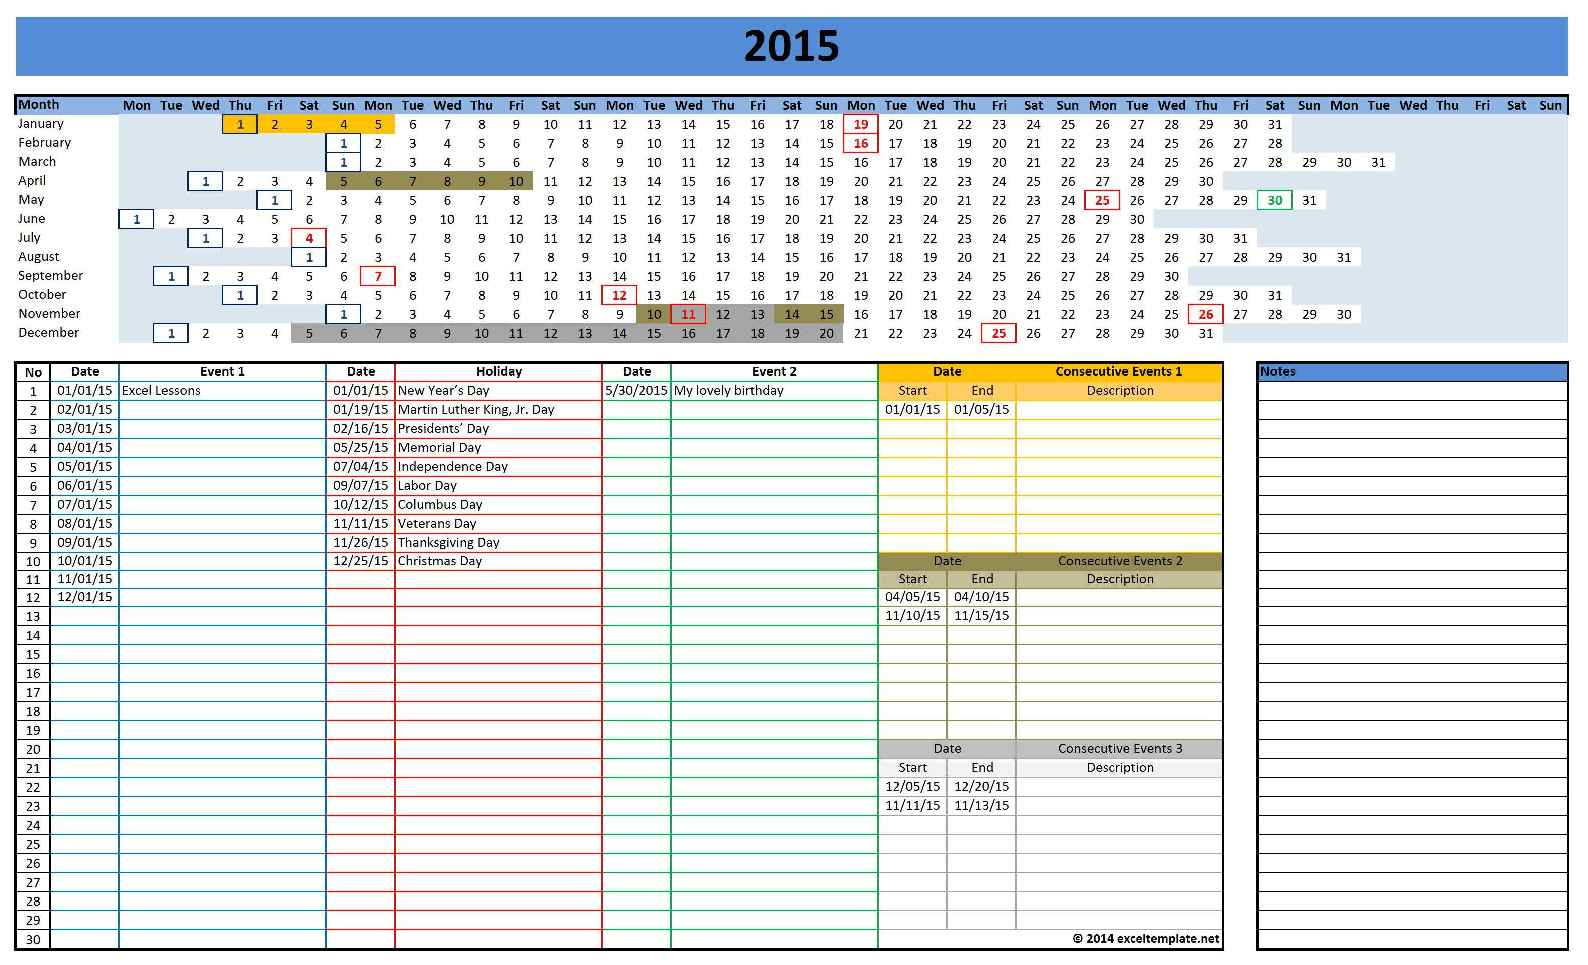 2015 Calendar Templates | Microsoft and Open Office Templates